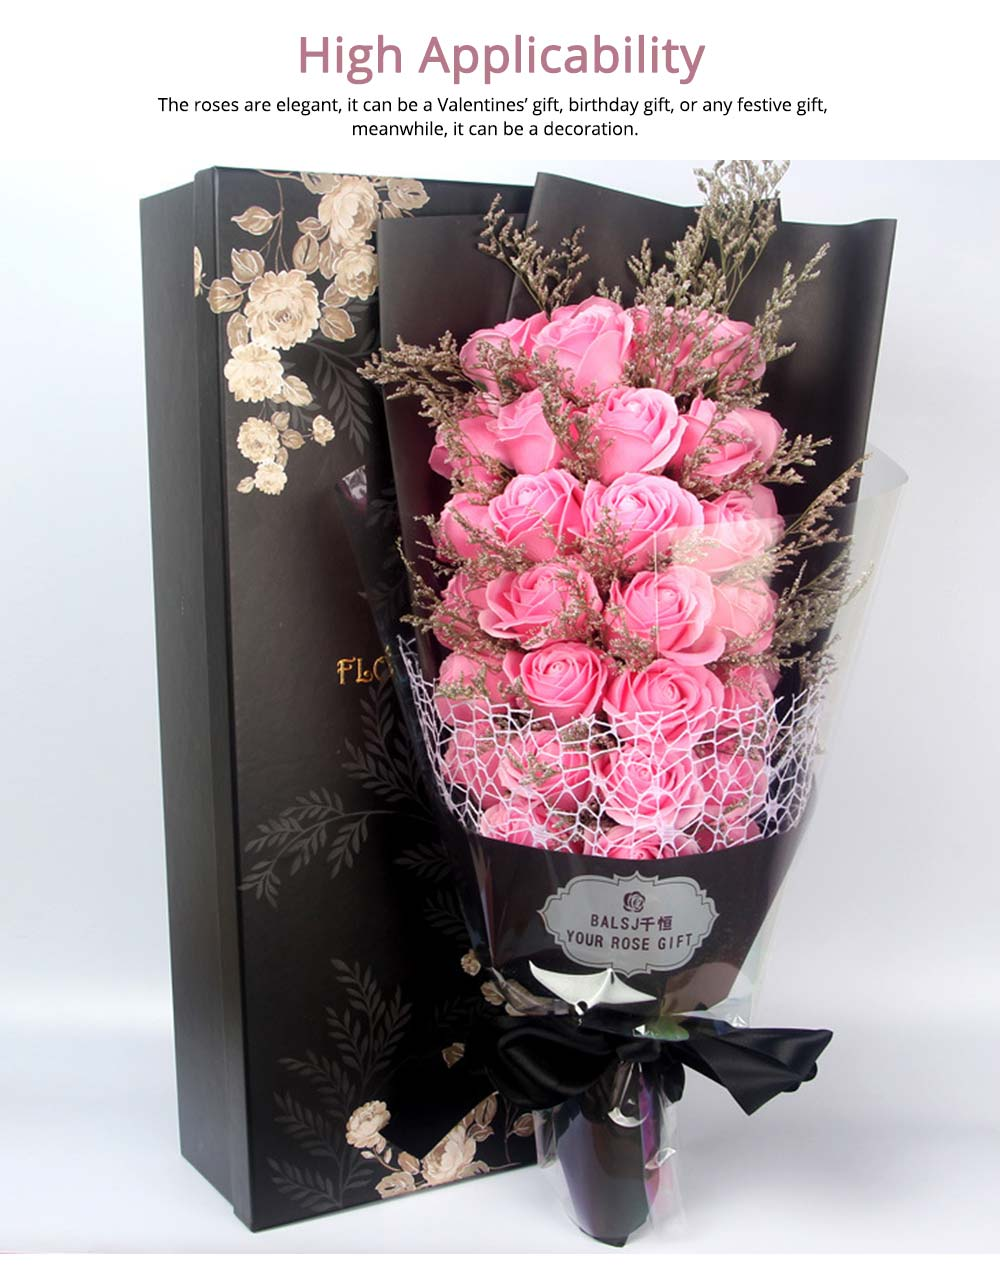 Preserved Fresh Rose with Dry Flower for Valentine's Day, Romantic Rose with Luxurious Gift Box for Girlfriend 3